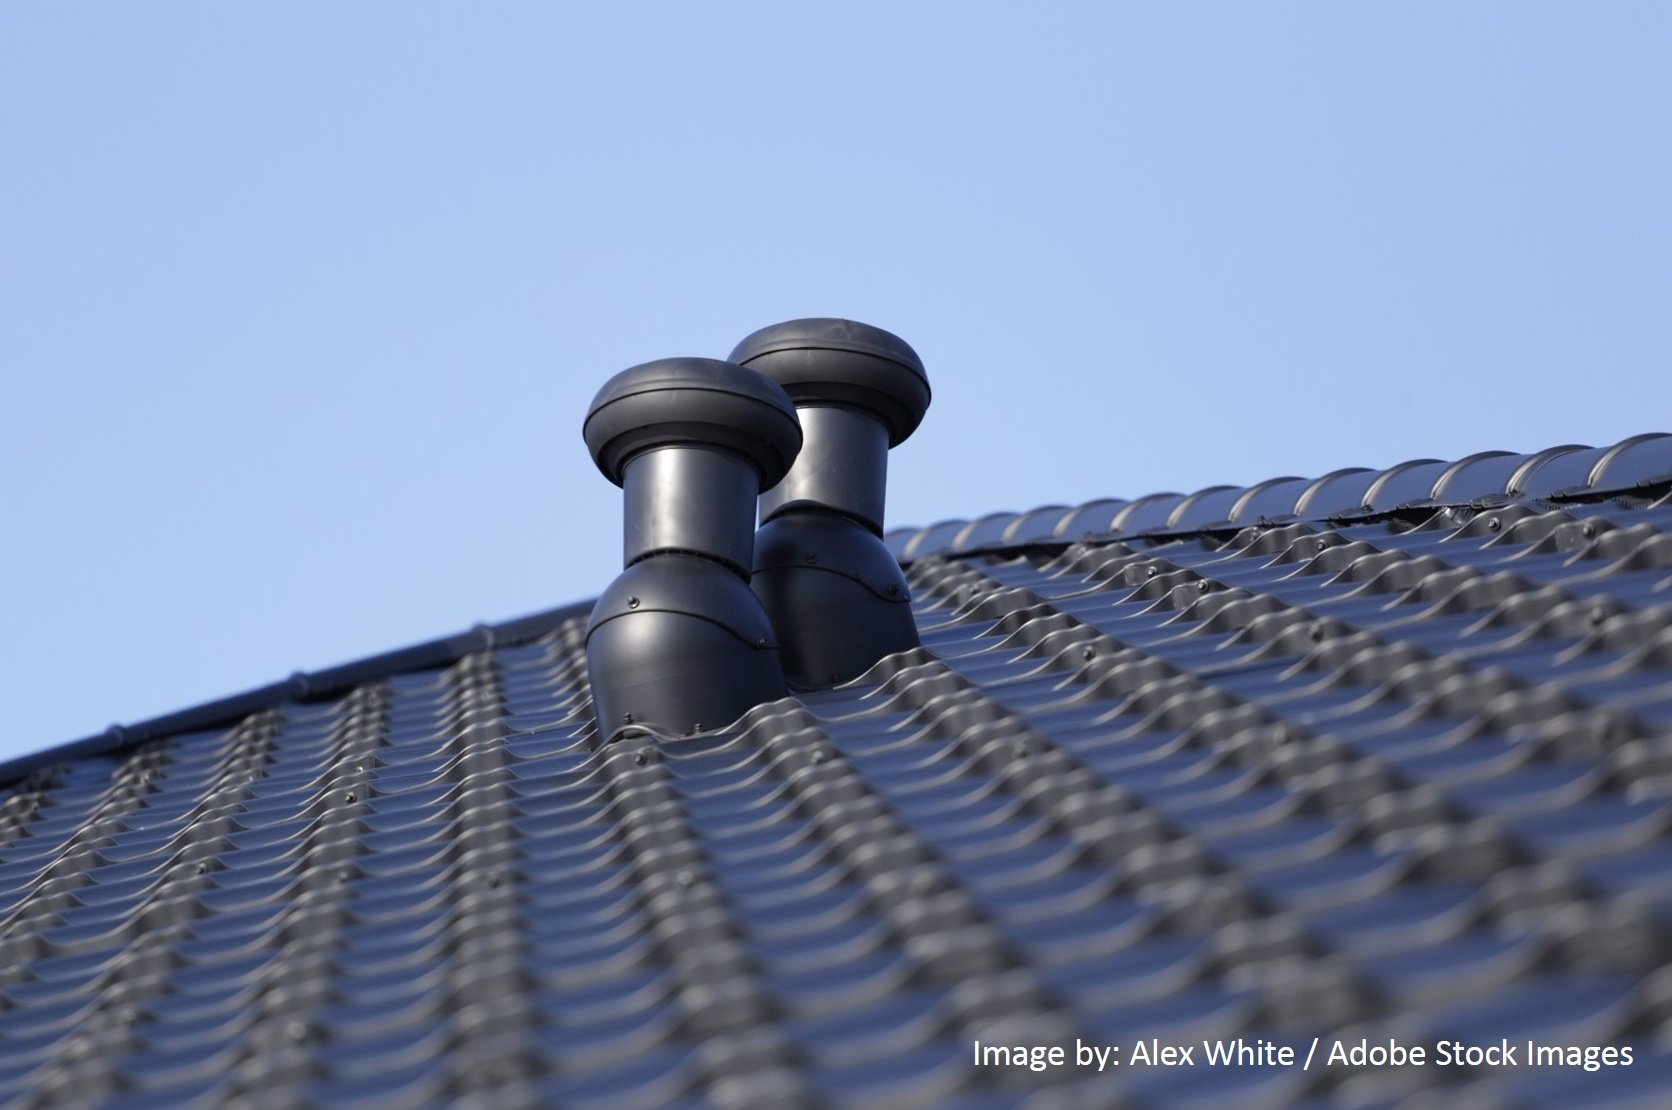 Is your roof leaking around the vent pipes installed on your rooftop?